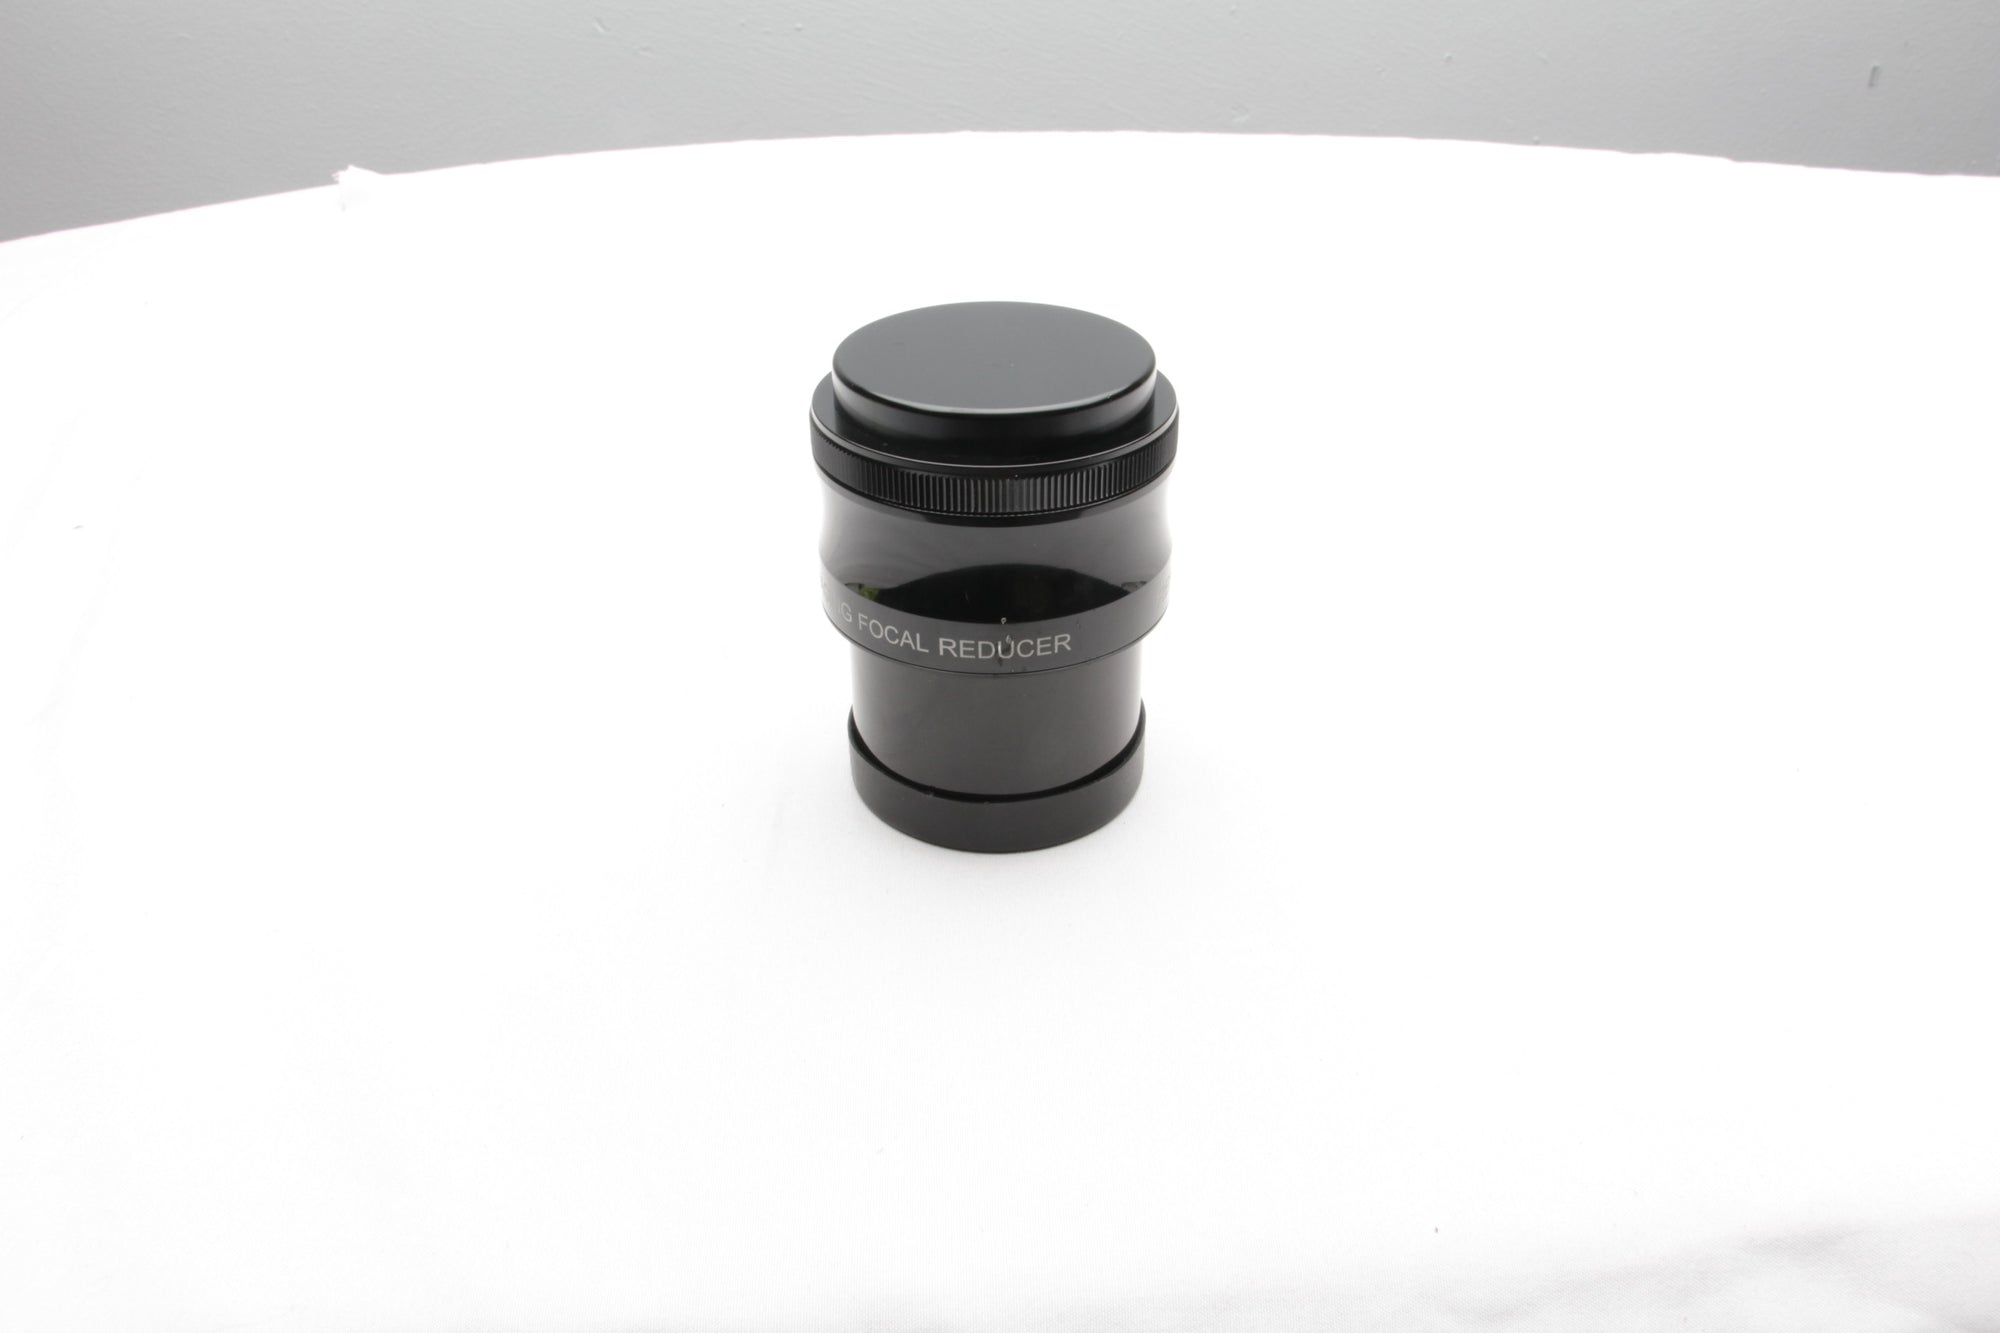 Used Orion 0.8x Focal Reducer for Refractor Telescopes